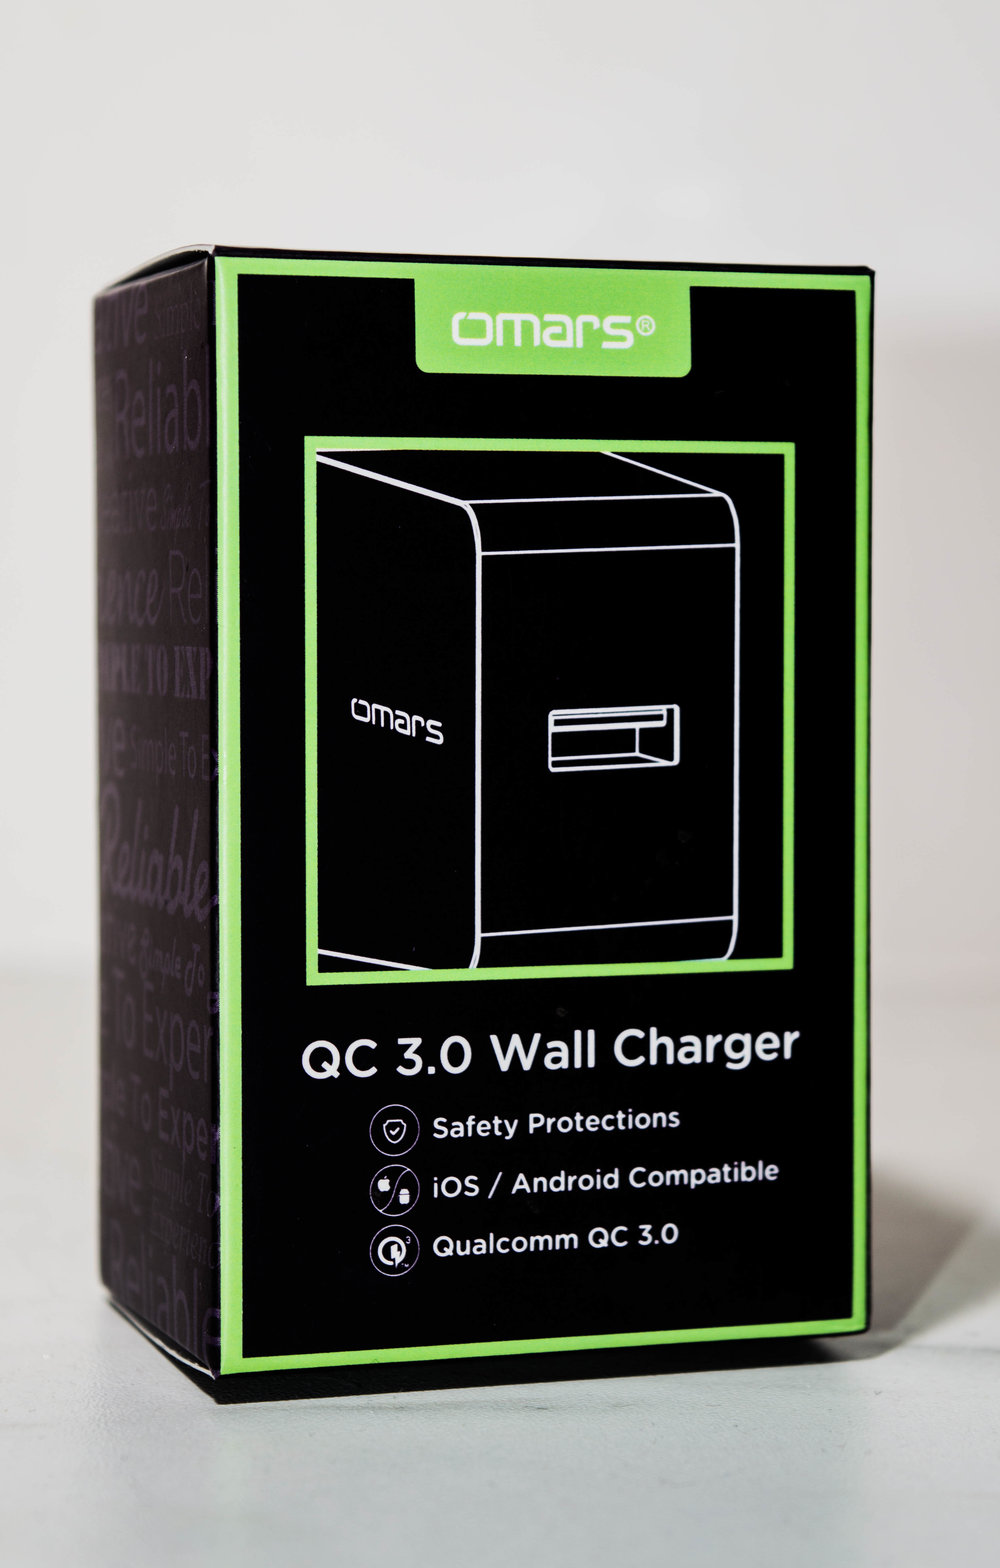 OMARS Wireless Chargeur Chargeur USB QC3.0 - 1port) - OMARS Wireless Charger